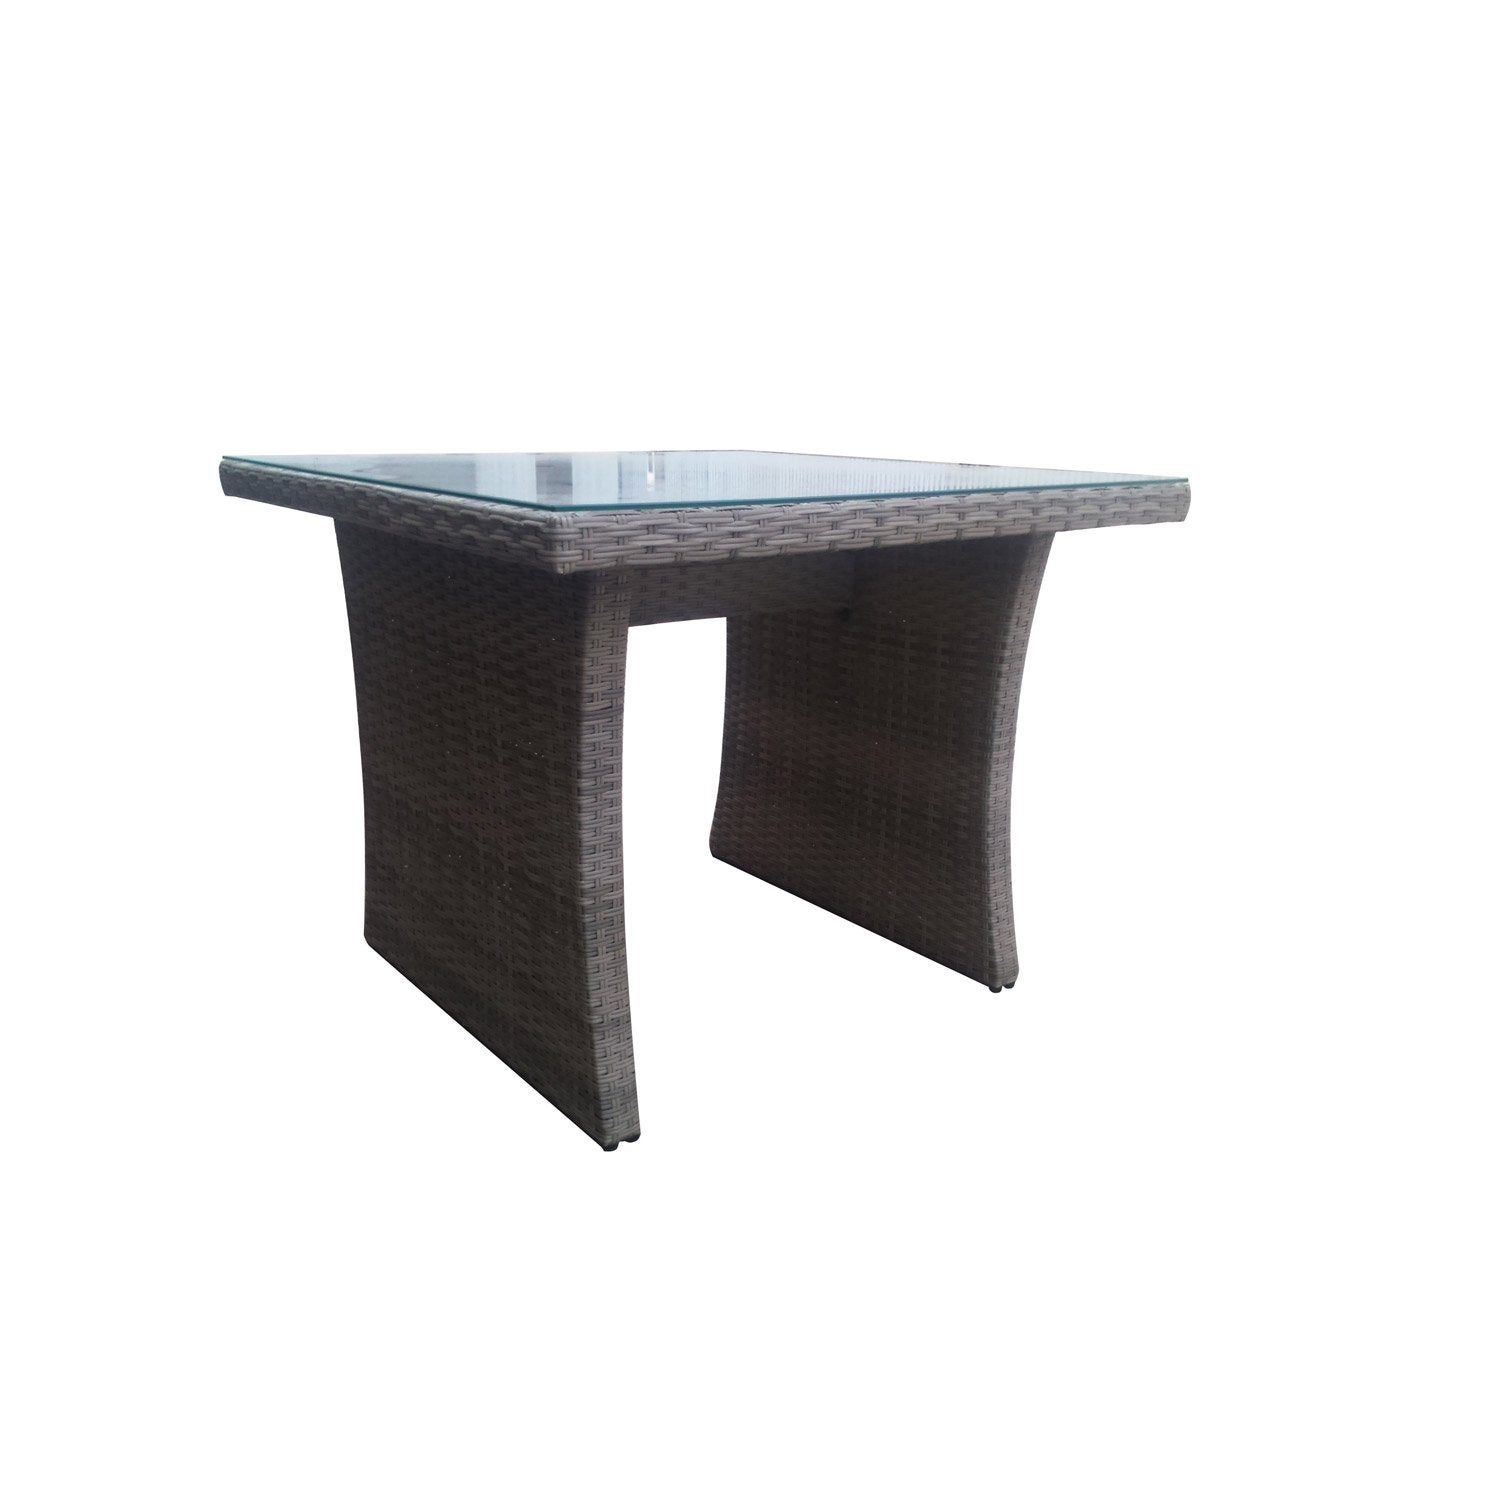 Carr jardin leroy merlin good good table de jardin leroy for Table cuisine leroy merlin